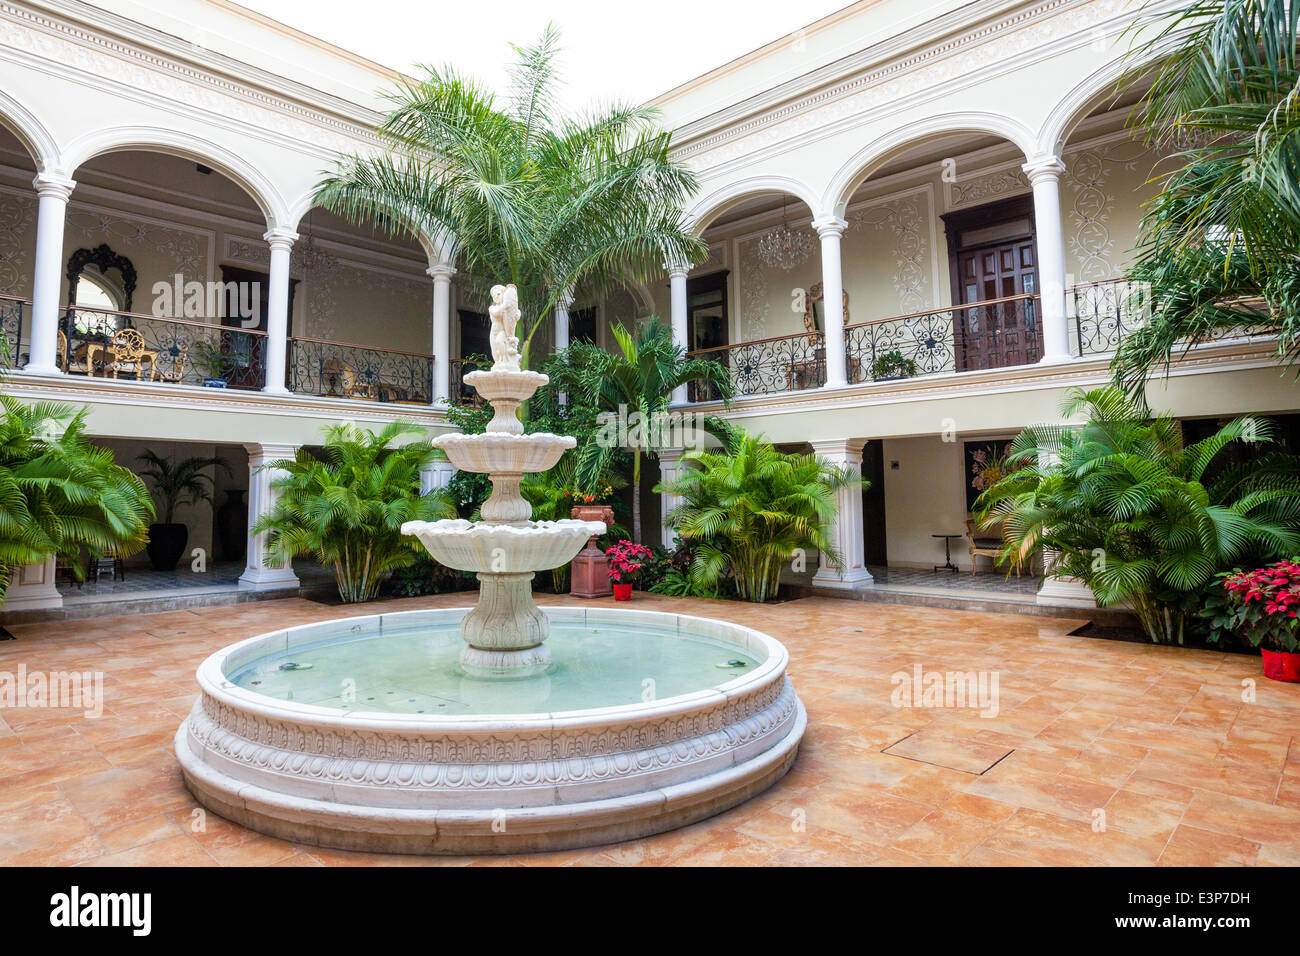 Historic house in downtown Merida, Yucatan, Mexico. - Stock Image